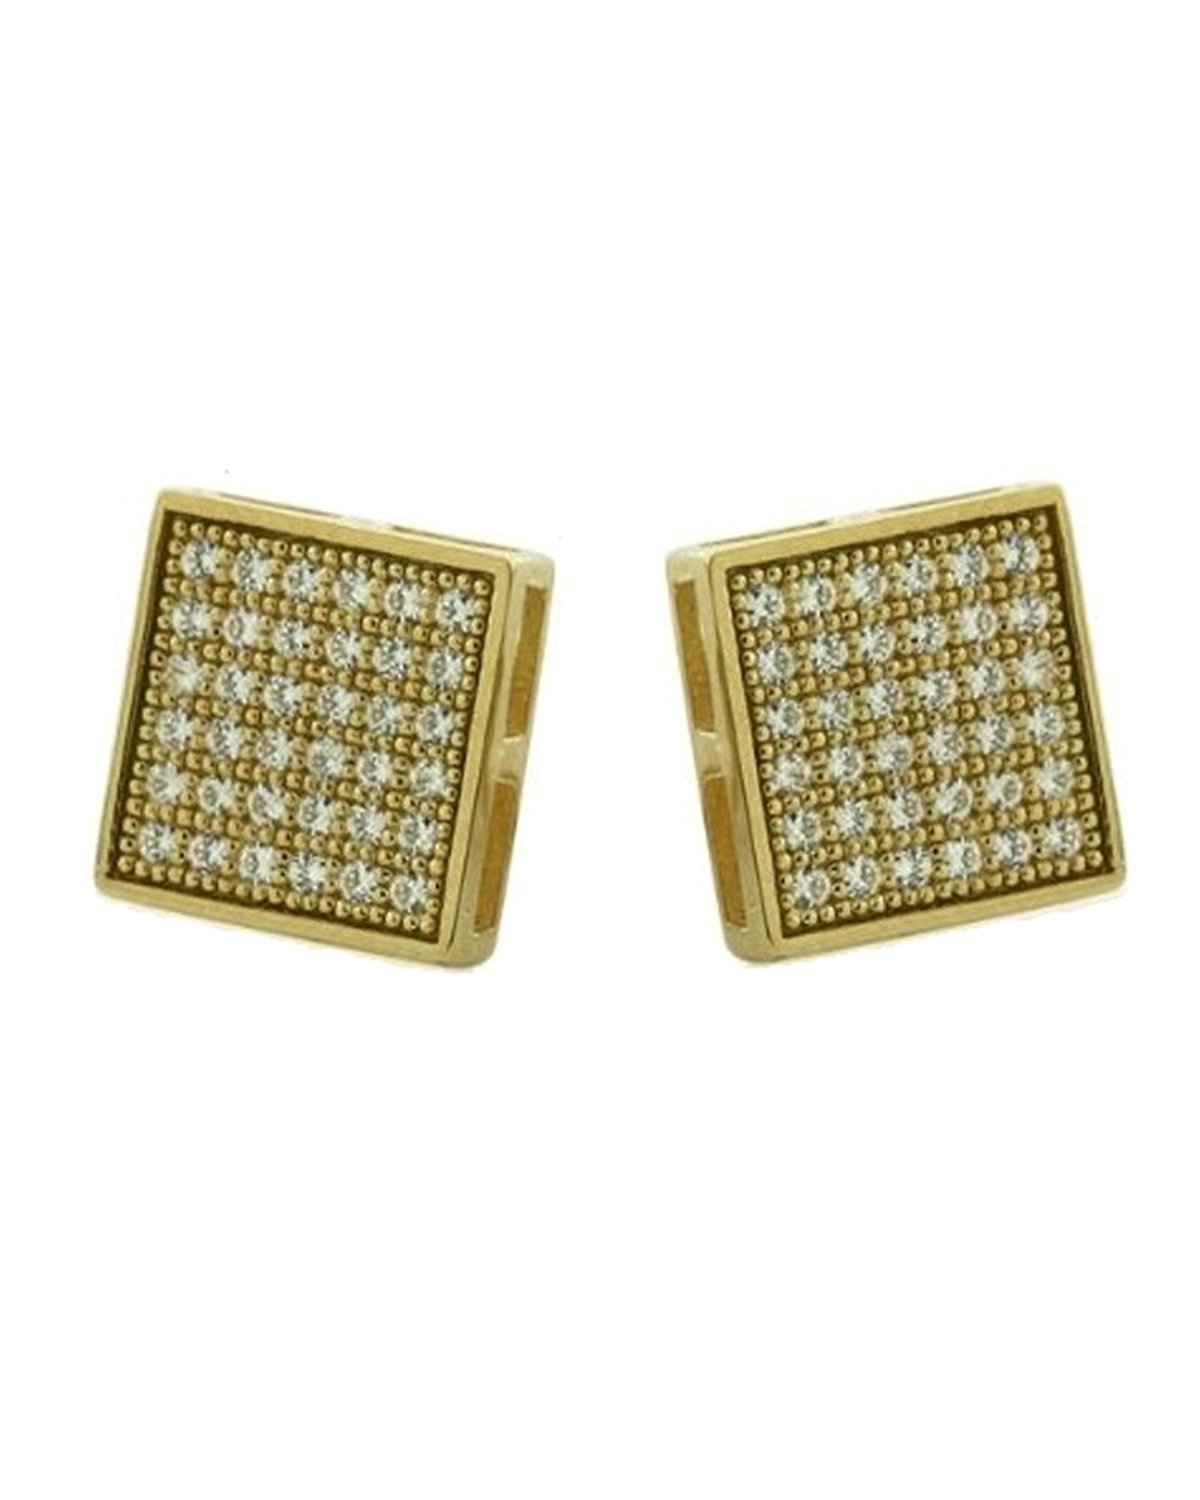 6598e9bcb Get Quotations · Gold-plated Micro Pave CZ Cubic Zirconia Square Stud  Earrings 5mm